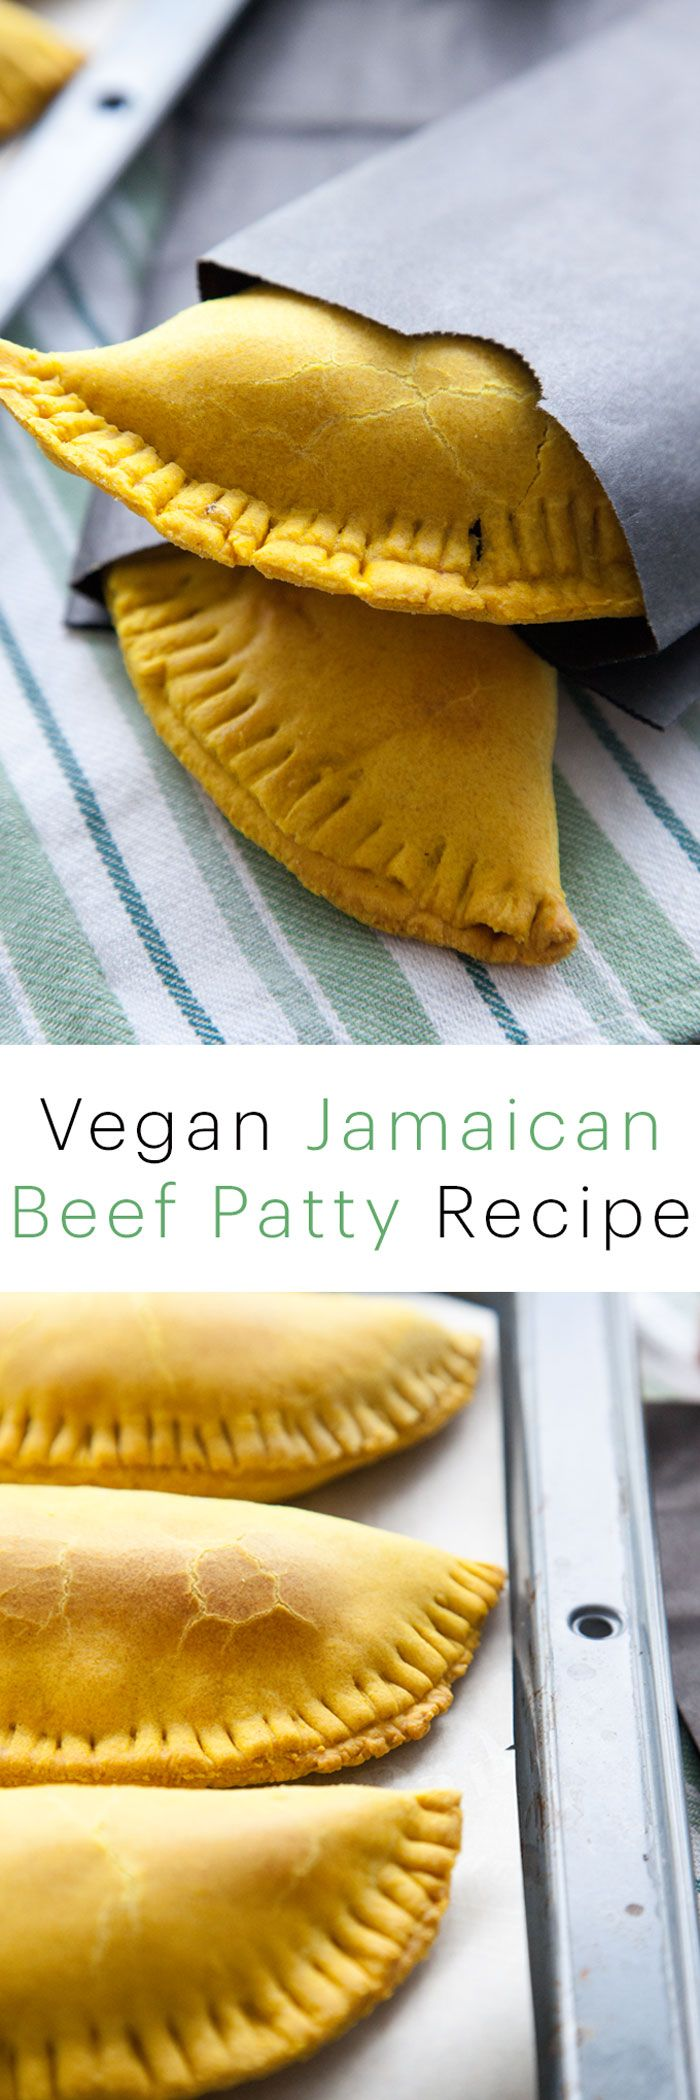 vegan jamaican patty recipe